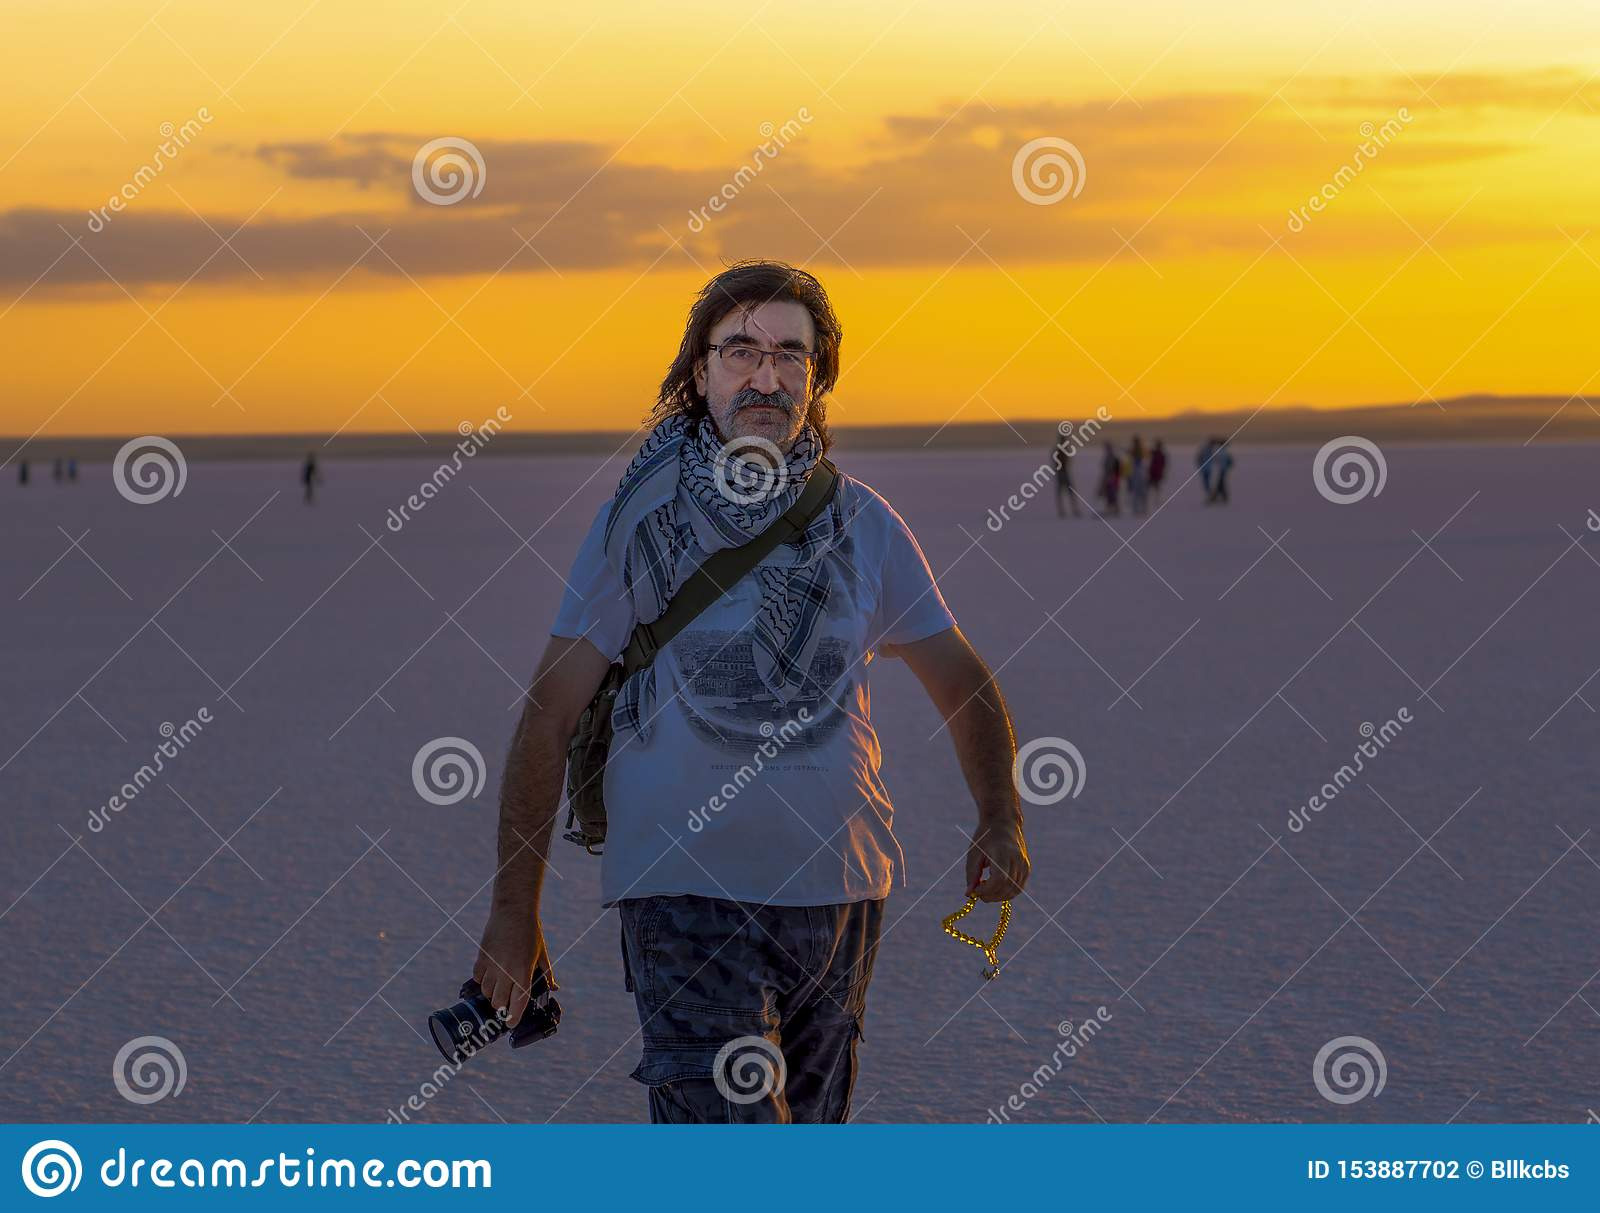 Sereflikochisar/ Turkey - July 07 2019: A silhouette of a Turkish man holds a camera in one hand and beads in other hand at Salt